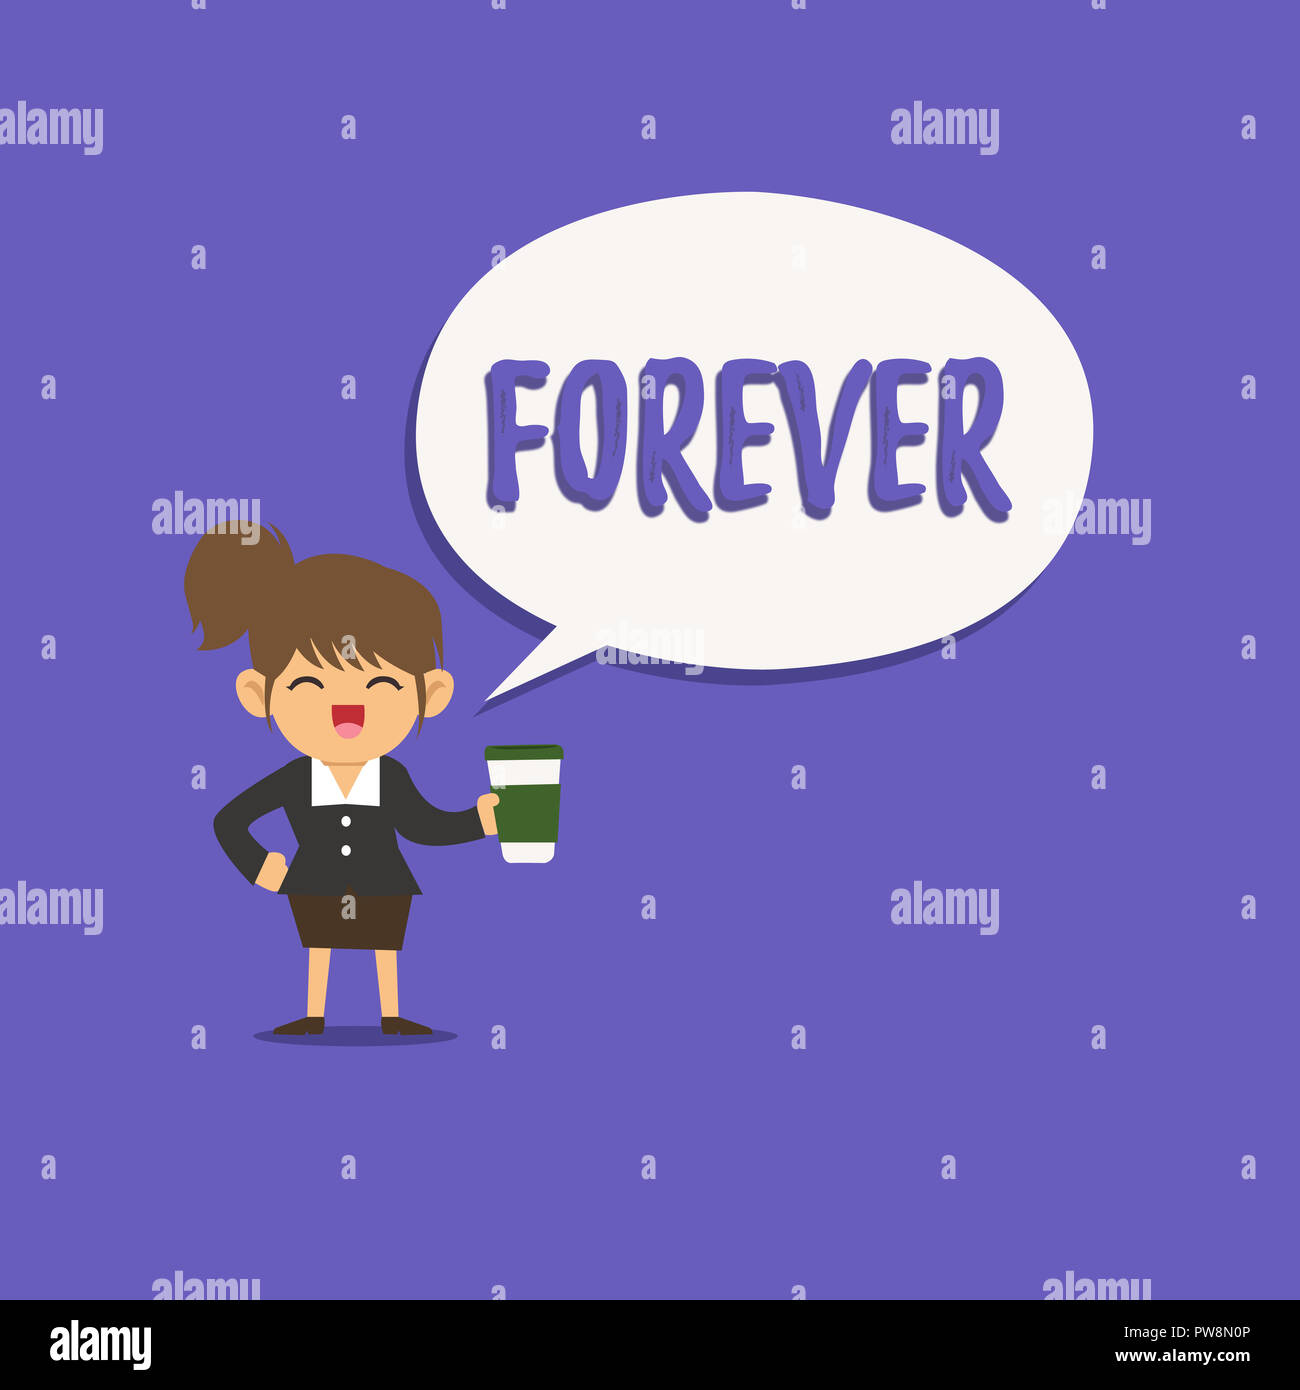 Text sign showing Forever. Conceptual photo Everlasting Peranalysisent Always for future time endless Eternal. - Stock Image